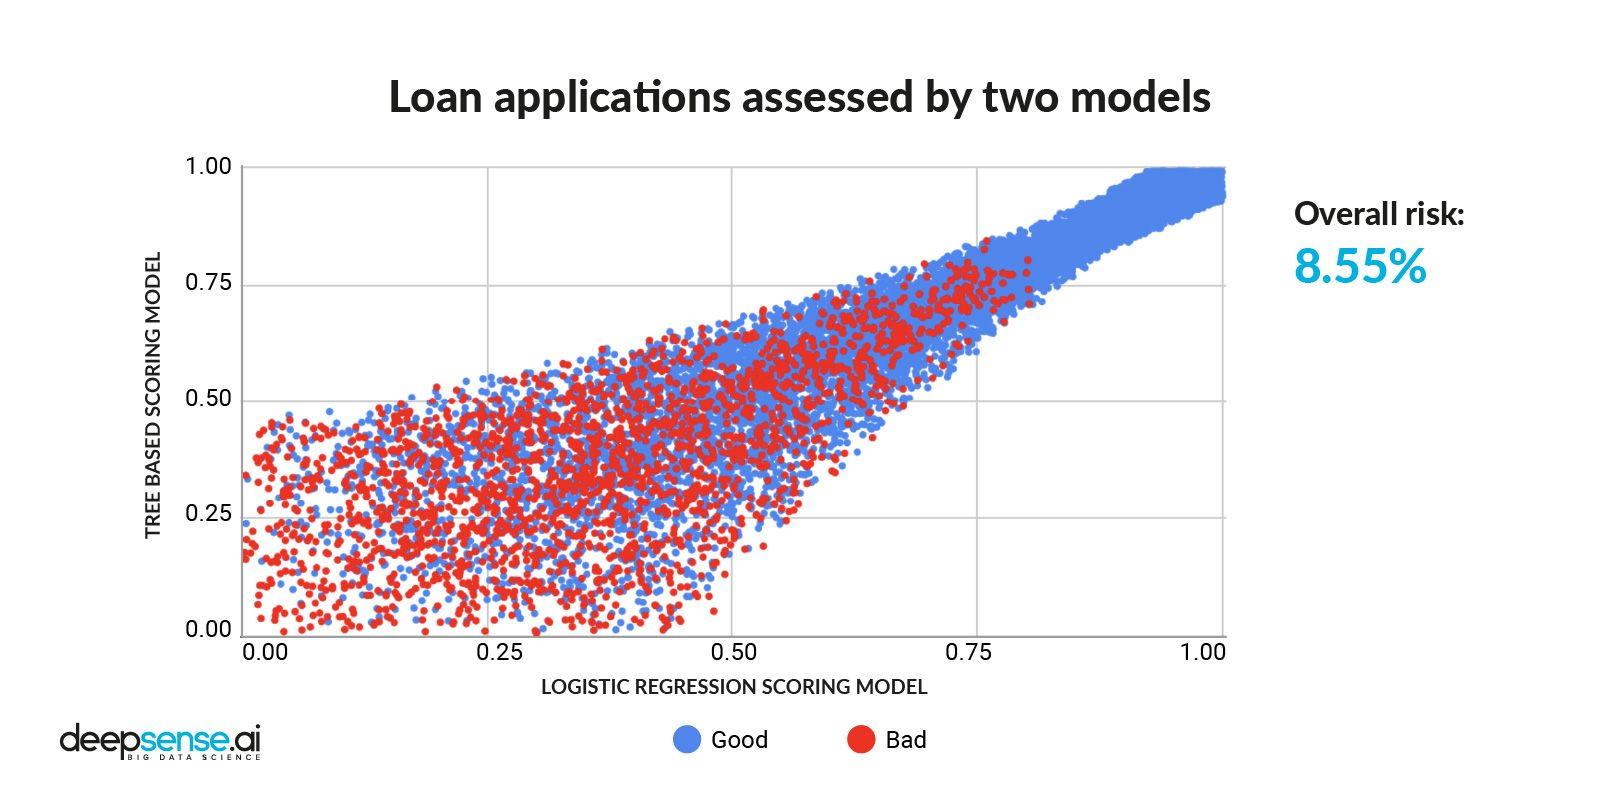 Loan applications assessed by 2 models